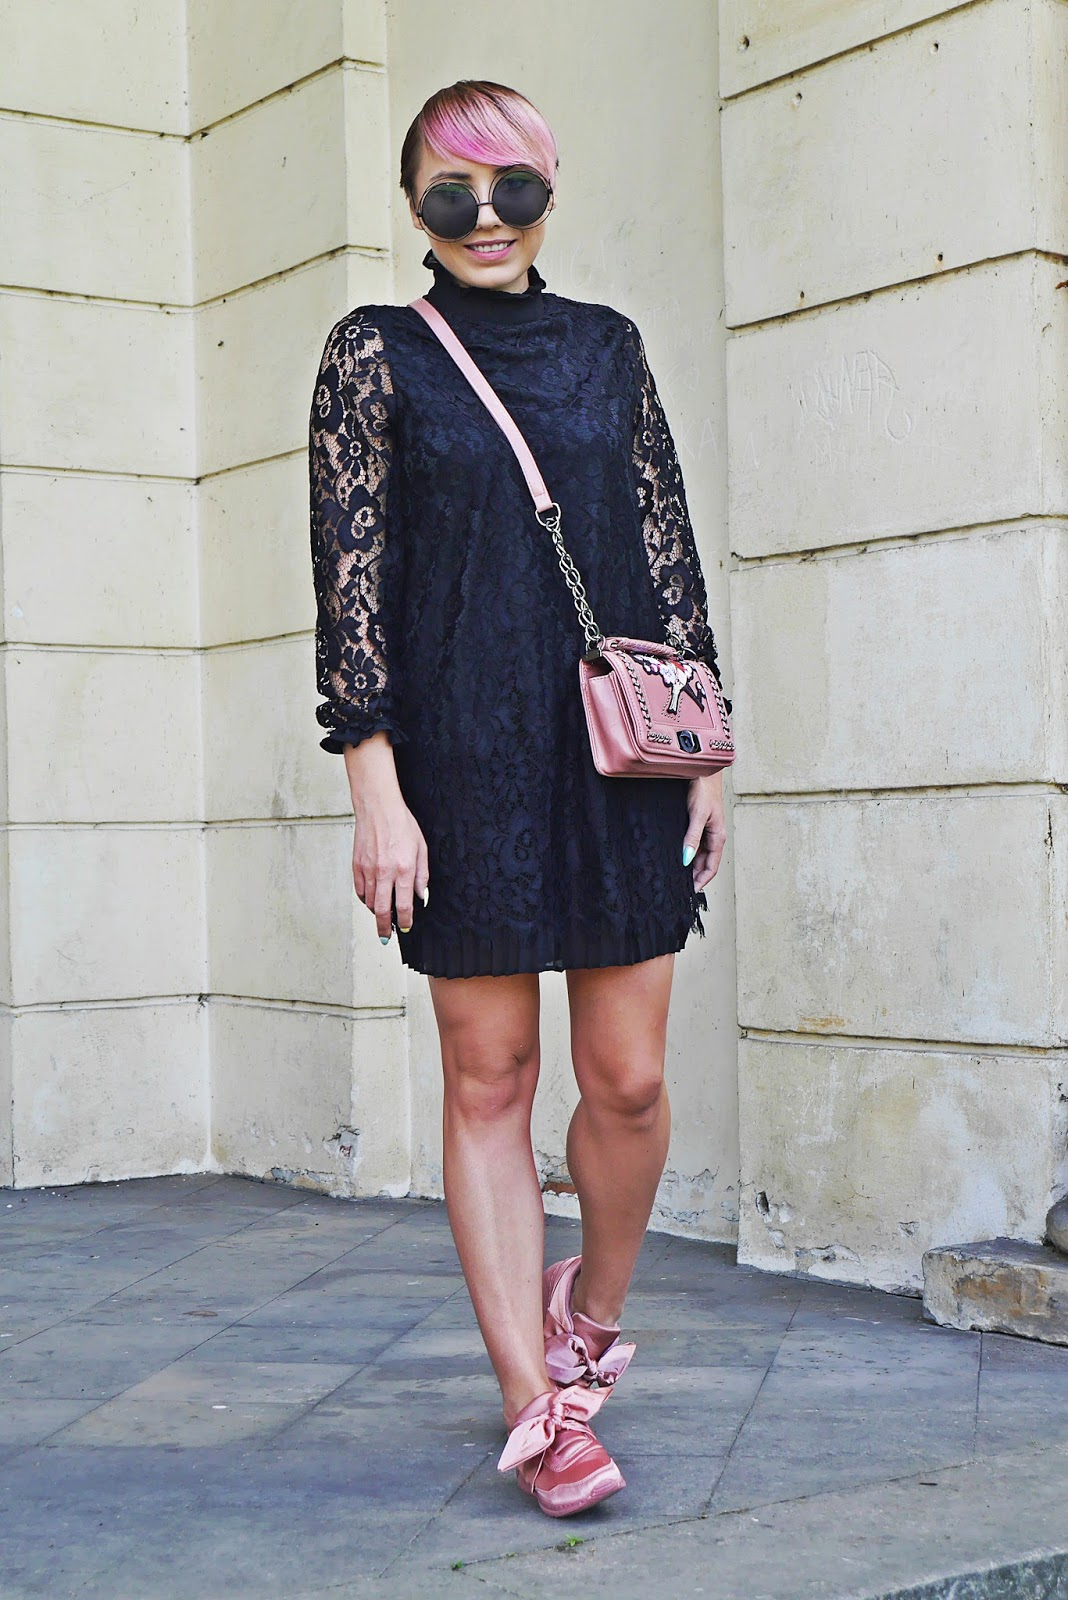 renee_shoes_pink_lace_dress_embroidery_bag_karyn_blog_modowy_150817d